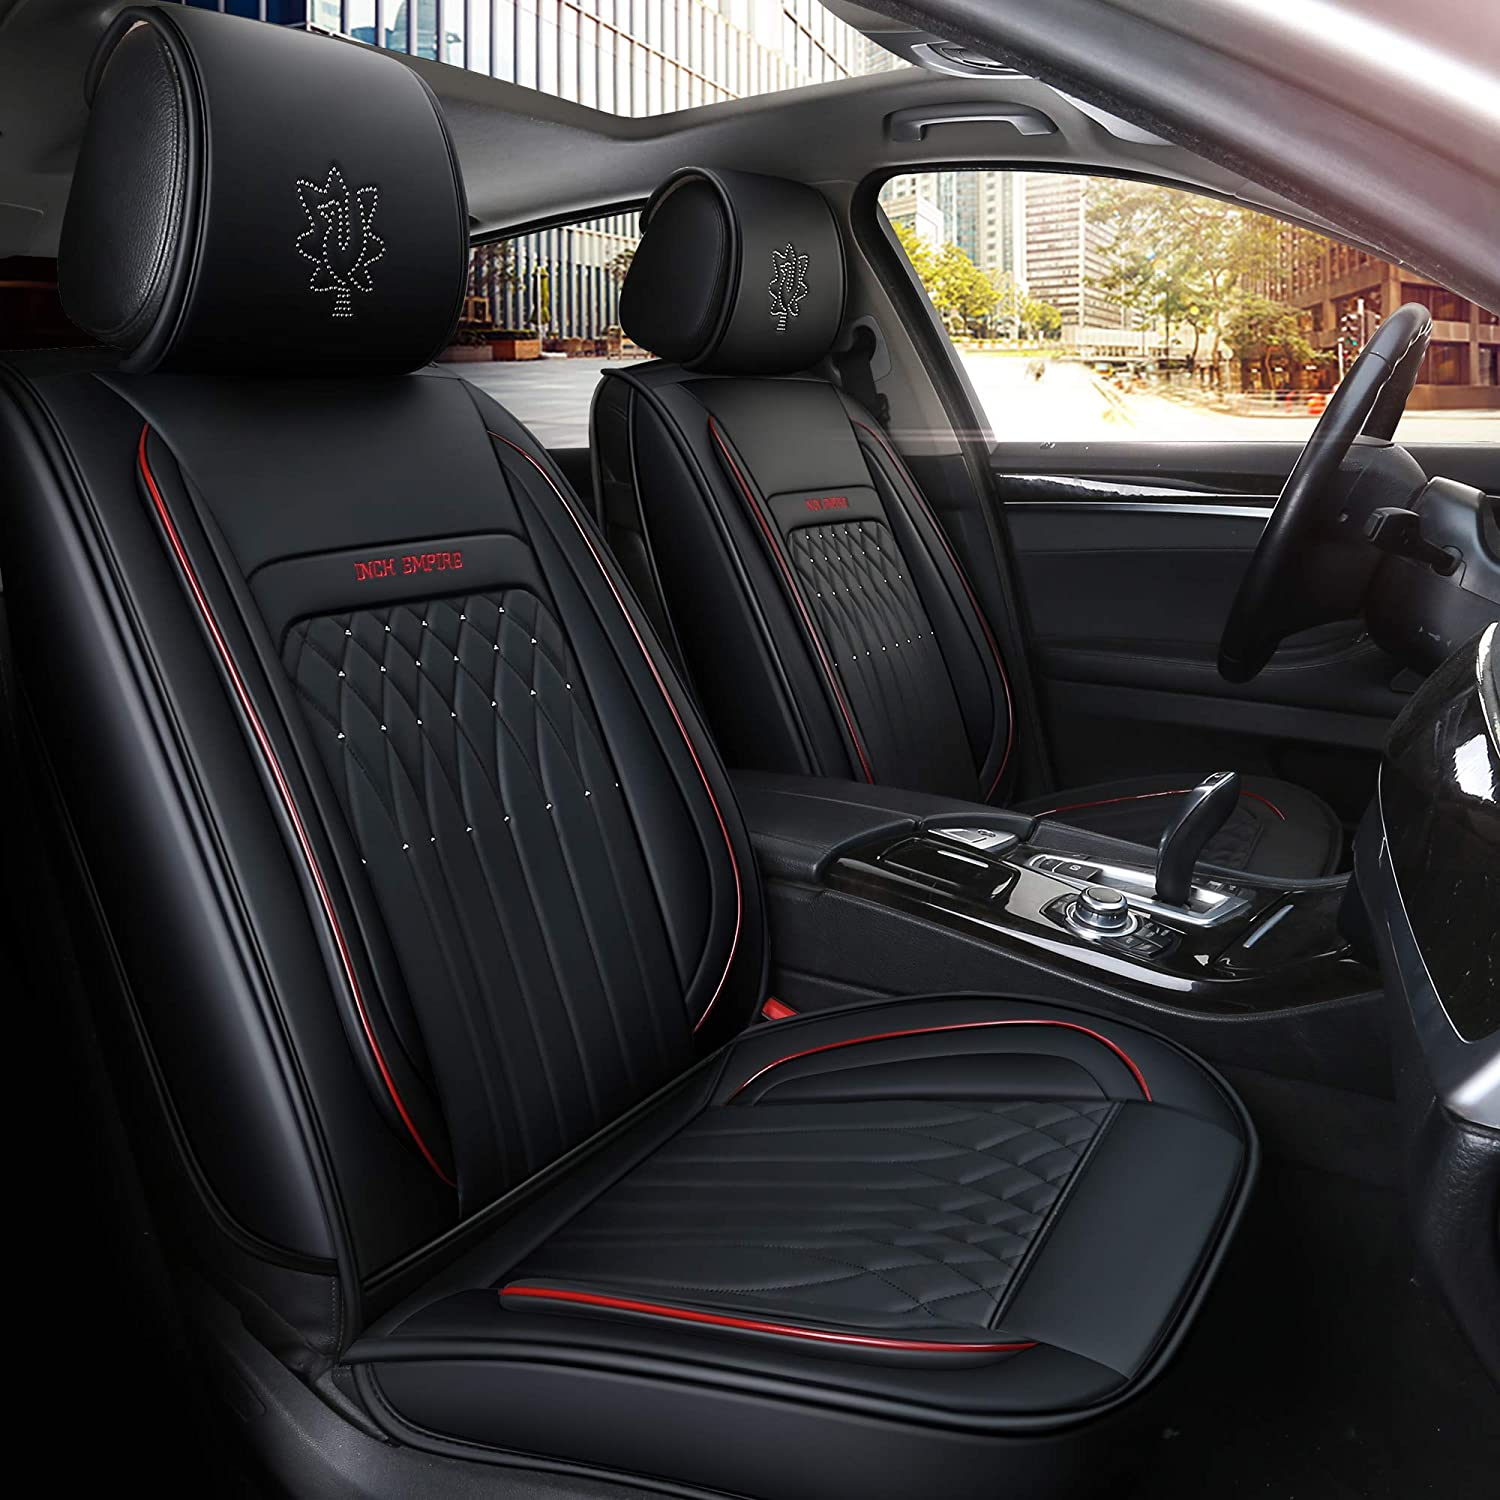 INCH EMPIRE Easy to Clean Car Seat Cushions Synthetic Leather Universal Fit Car Seat Cover for Corolla Cruze Legacy Malibu Maxima Tacoma Black with Red Line Full Set